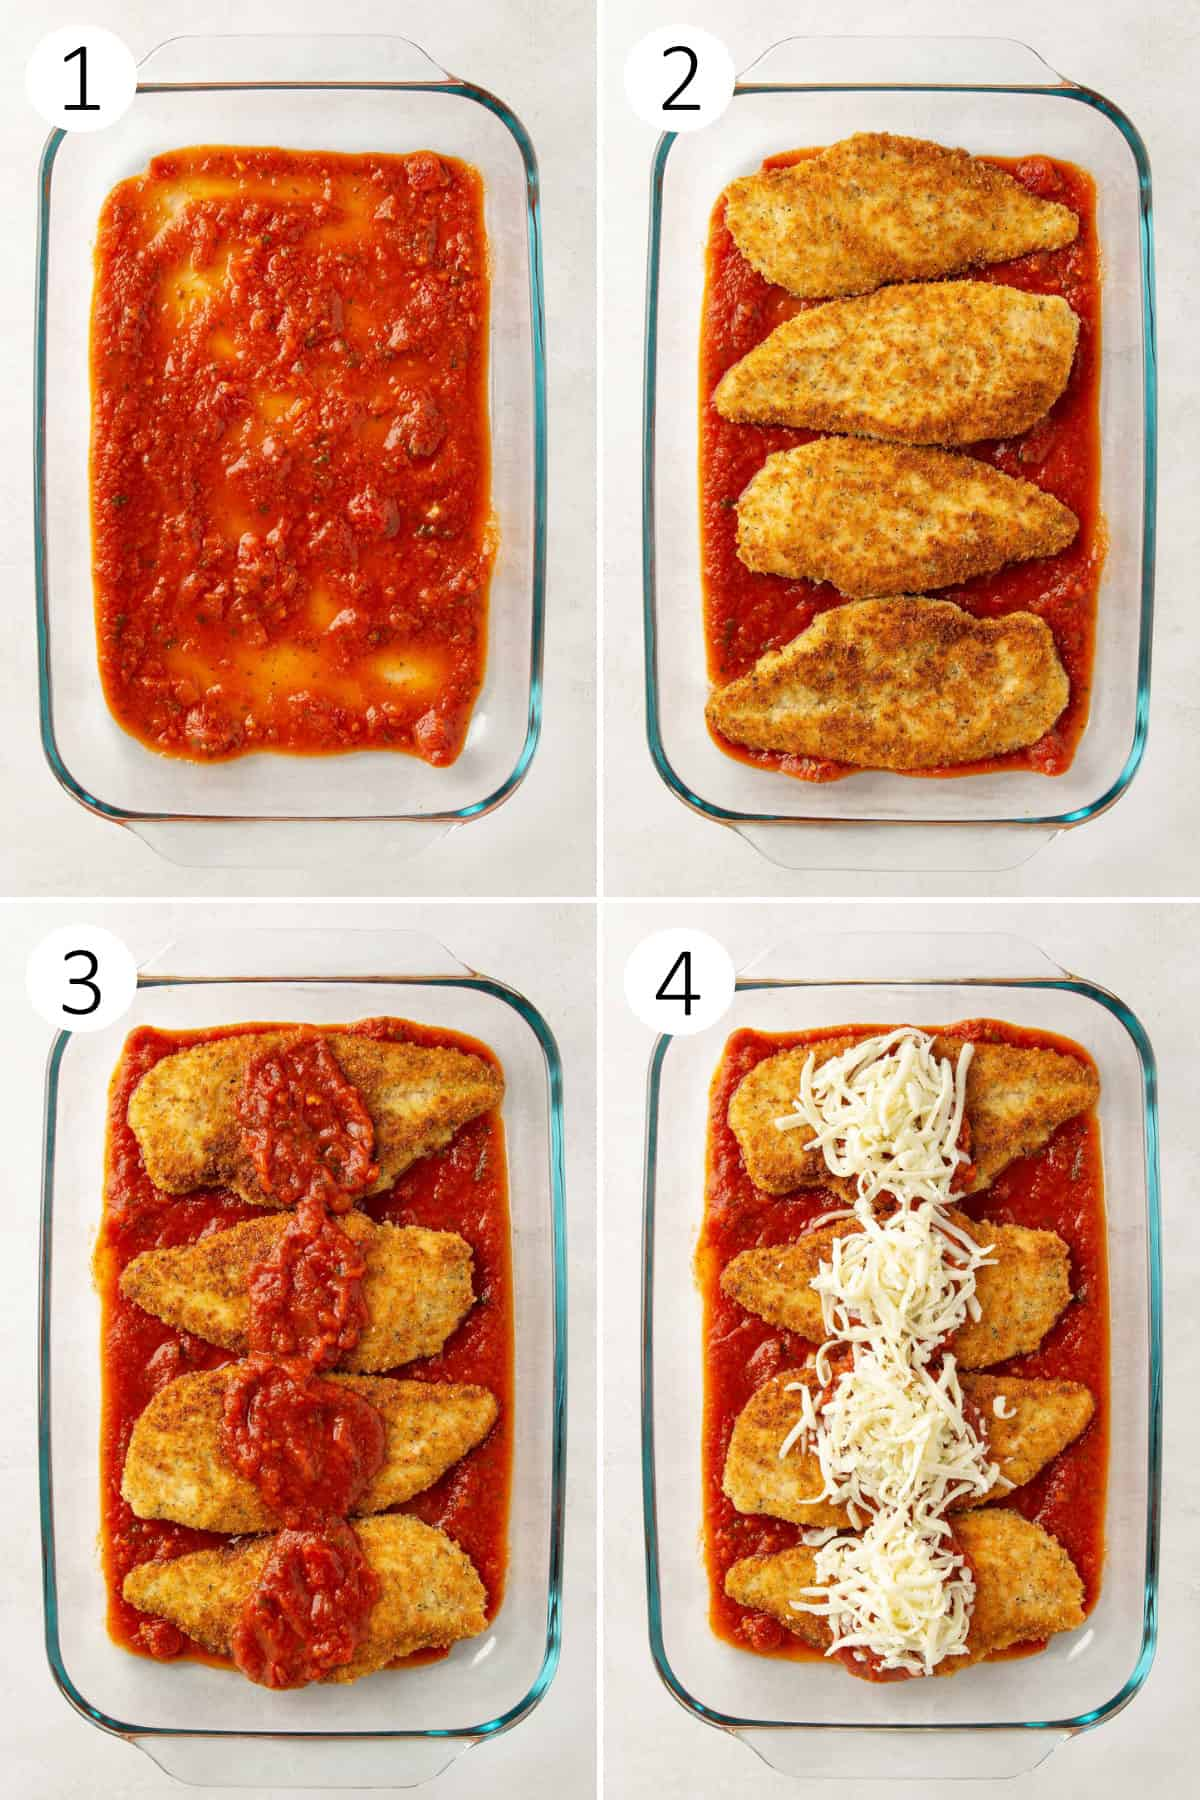 A four-image collage showing steps of preparing chicken parmesan for baking.